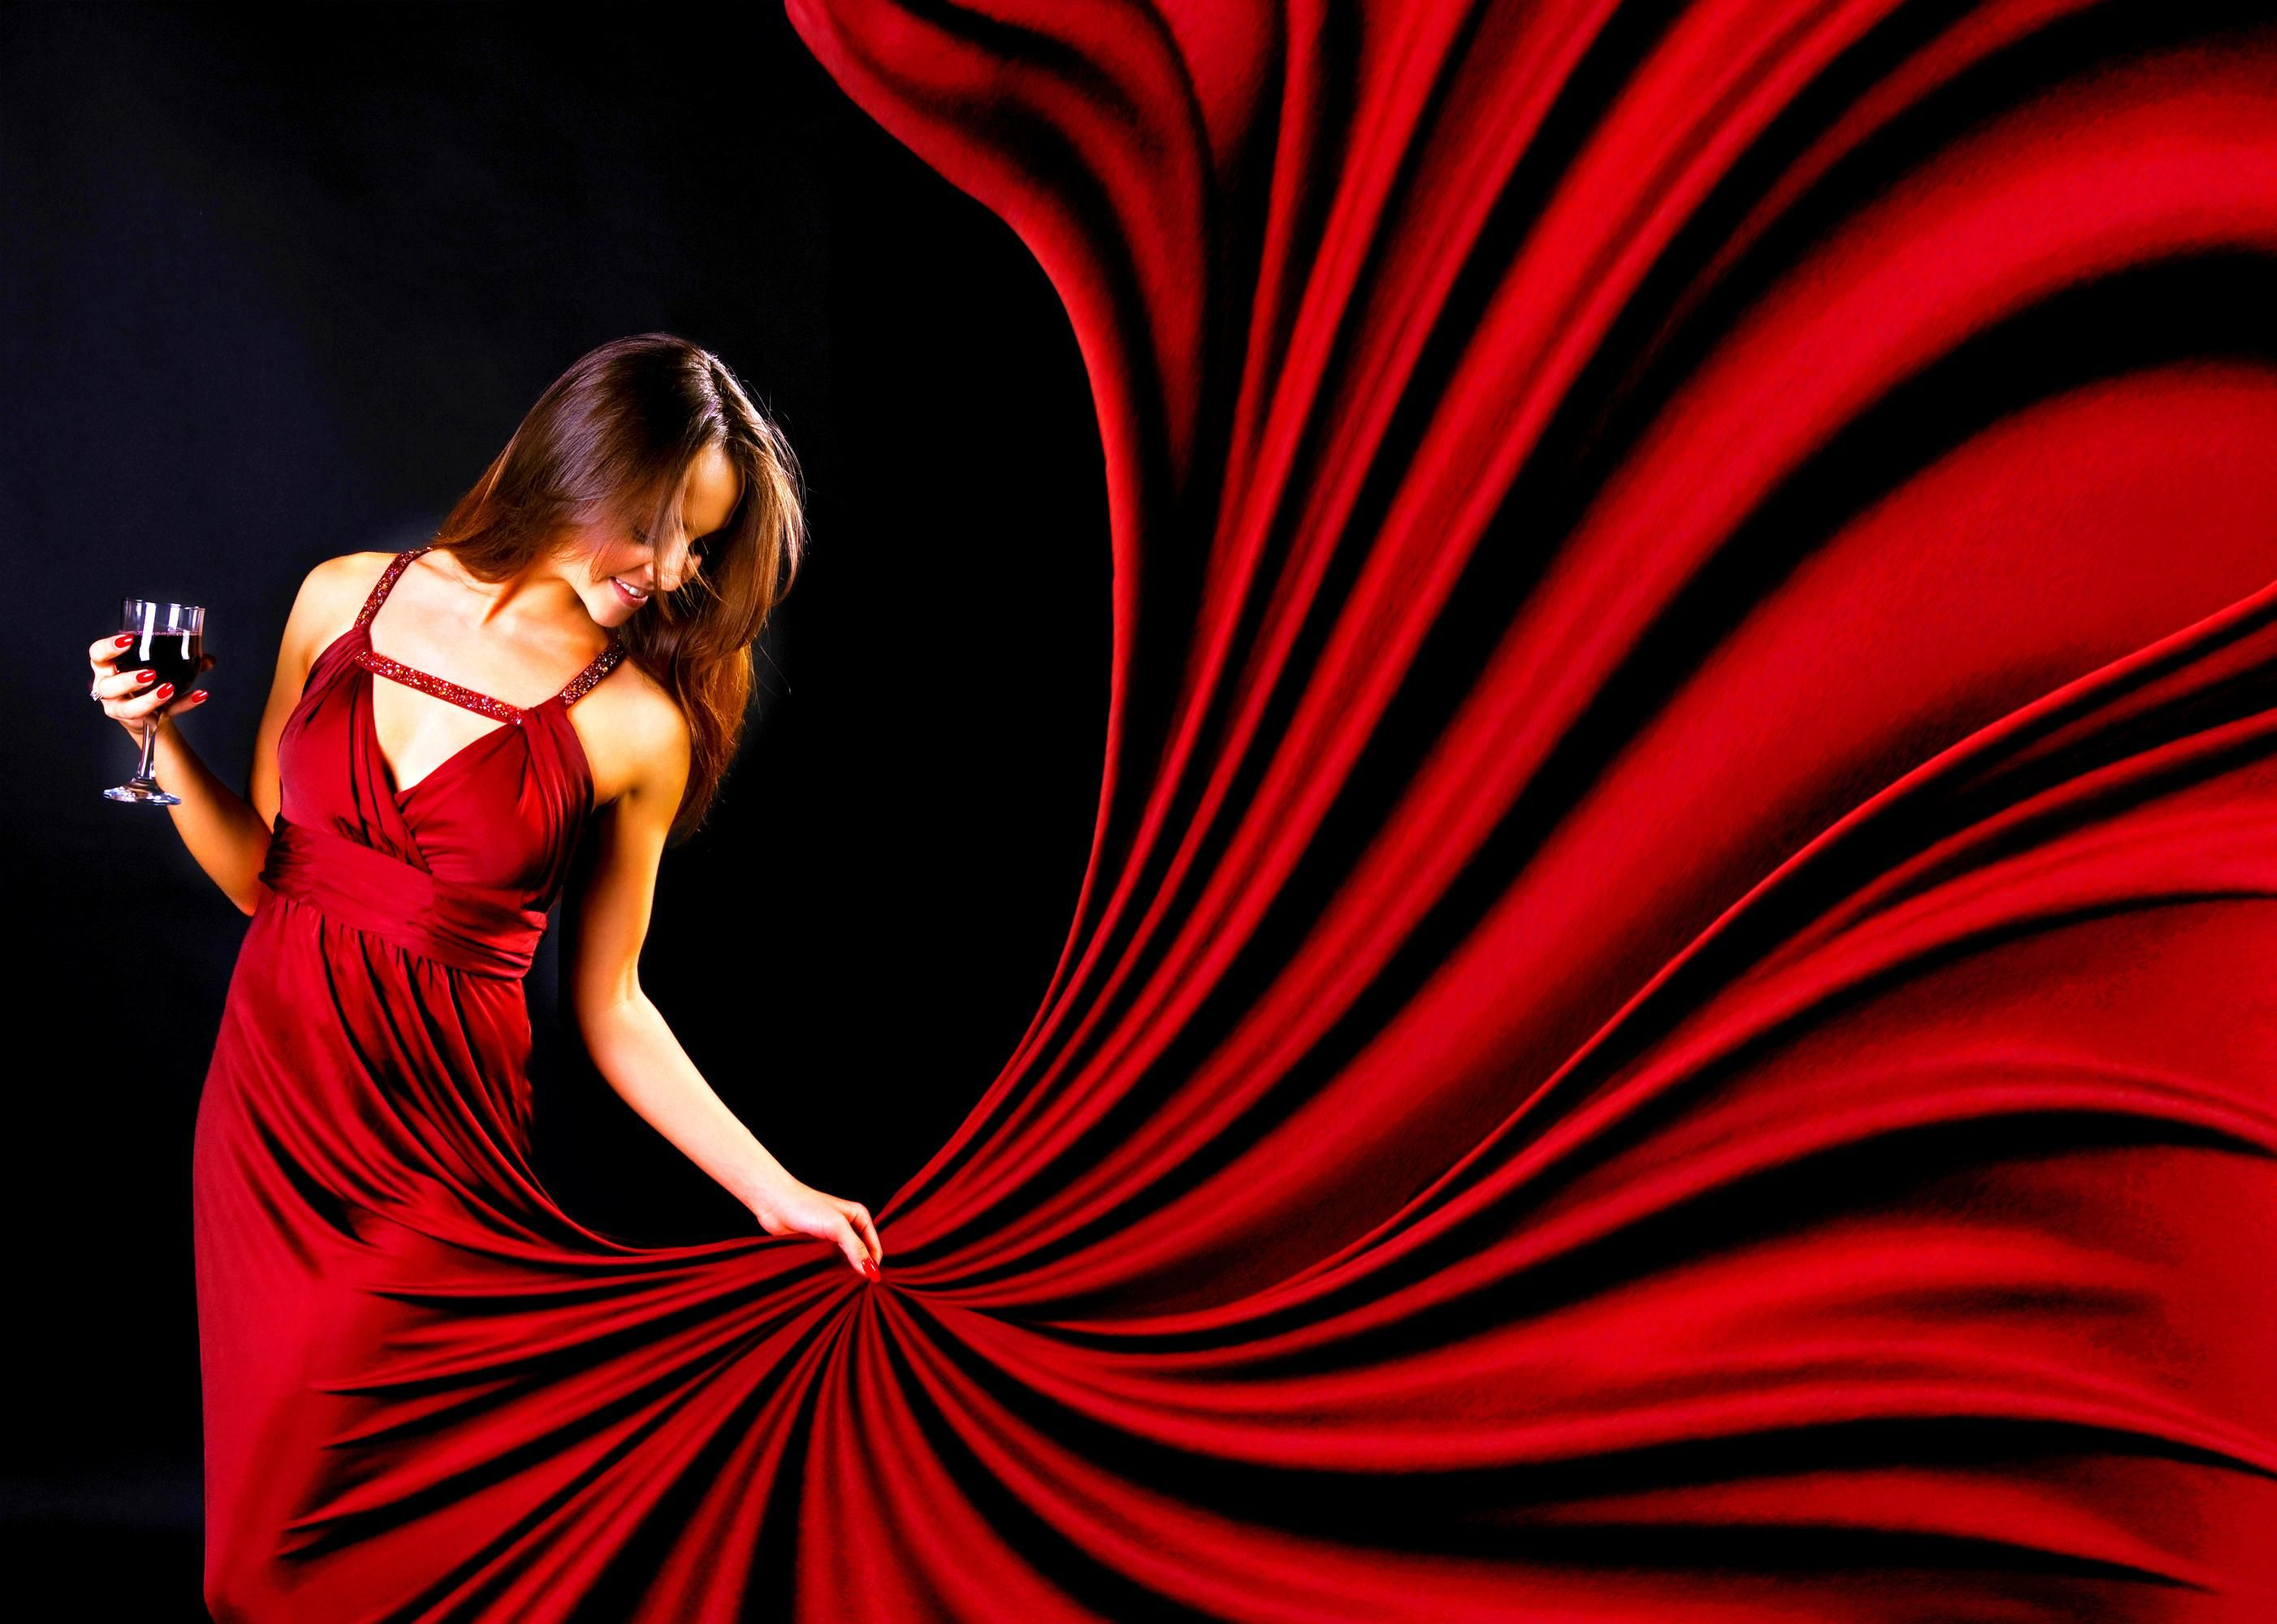 glamour lady in red - (#103238) - high quality and resolution